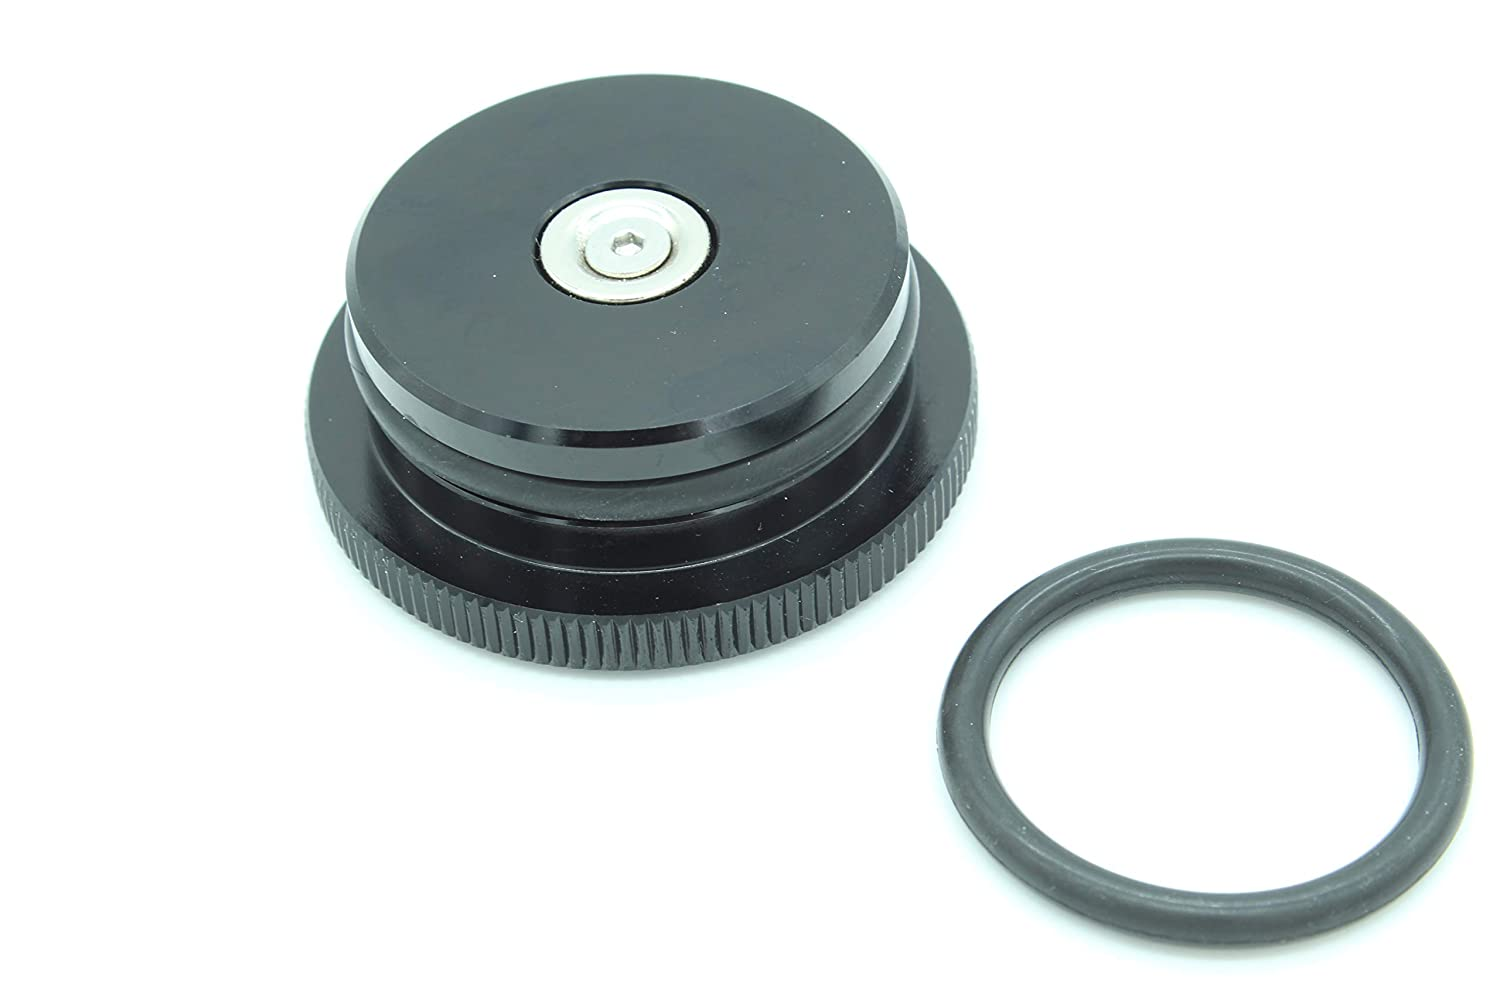 Magnetic Diesel Fuel Cap Accessory for Dodge RAM TRUCK 1500 2500 3500 with 6.7 CUMMINS EcoDiesel includes 2 oring sizes black 2013-2018